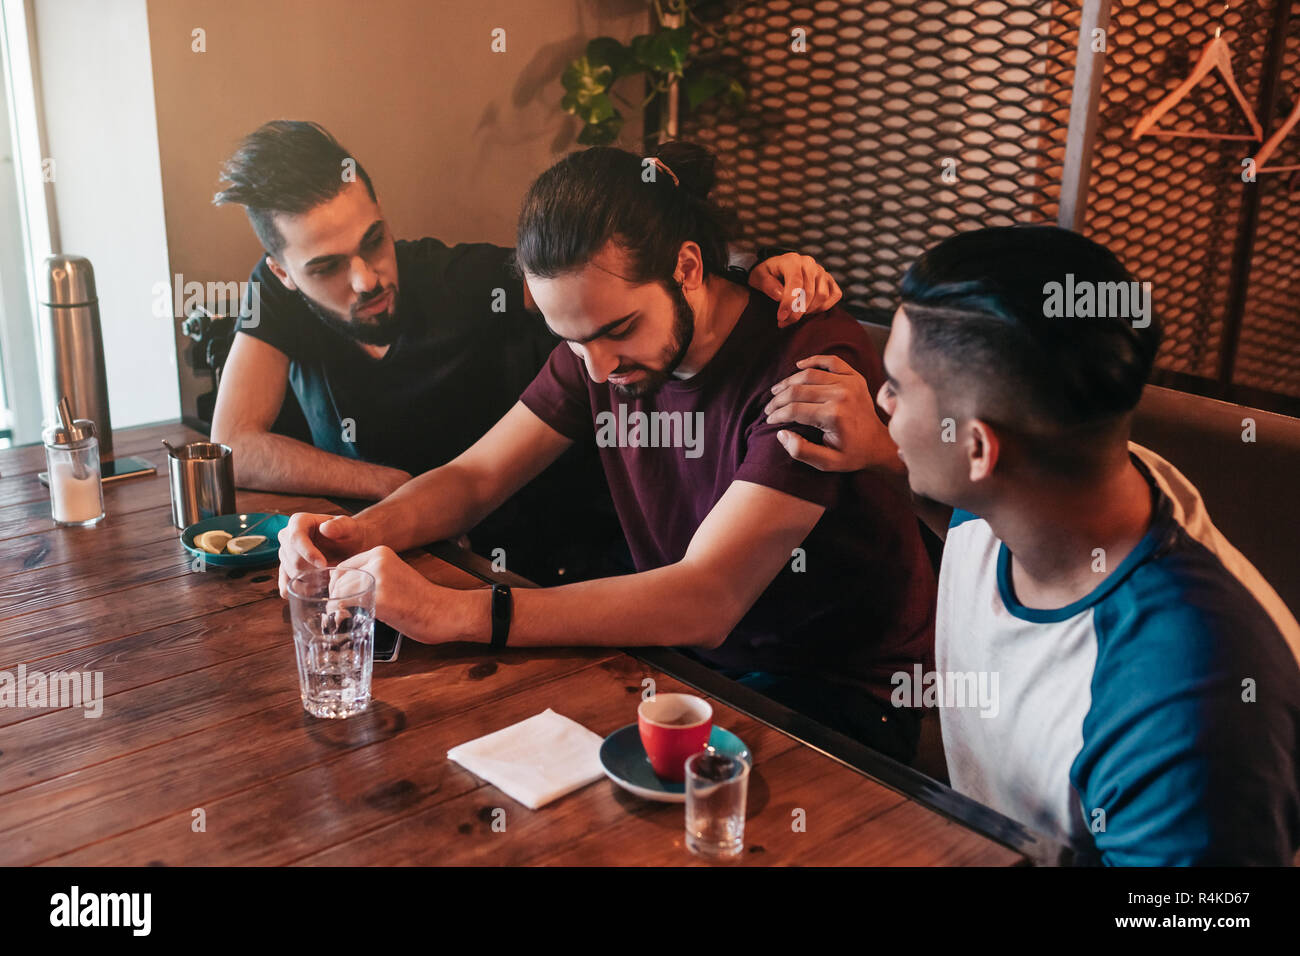 Supportive young men encourage their brokenhearted friend. Arabian guys cheer him up and advise in restaurant. Friendship concept. - Stock Image